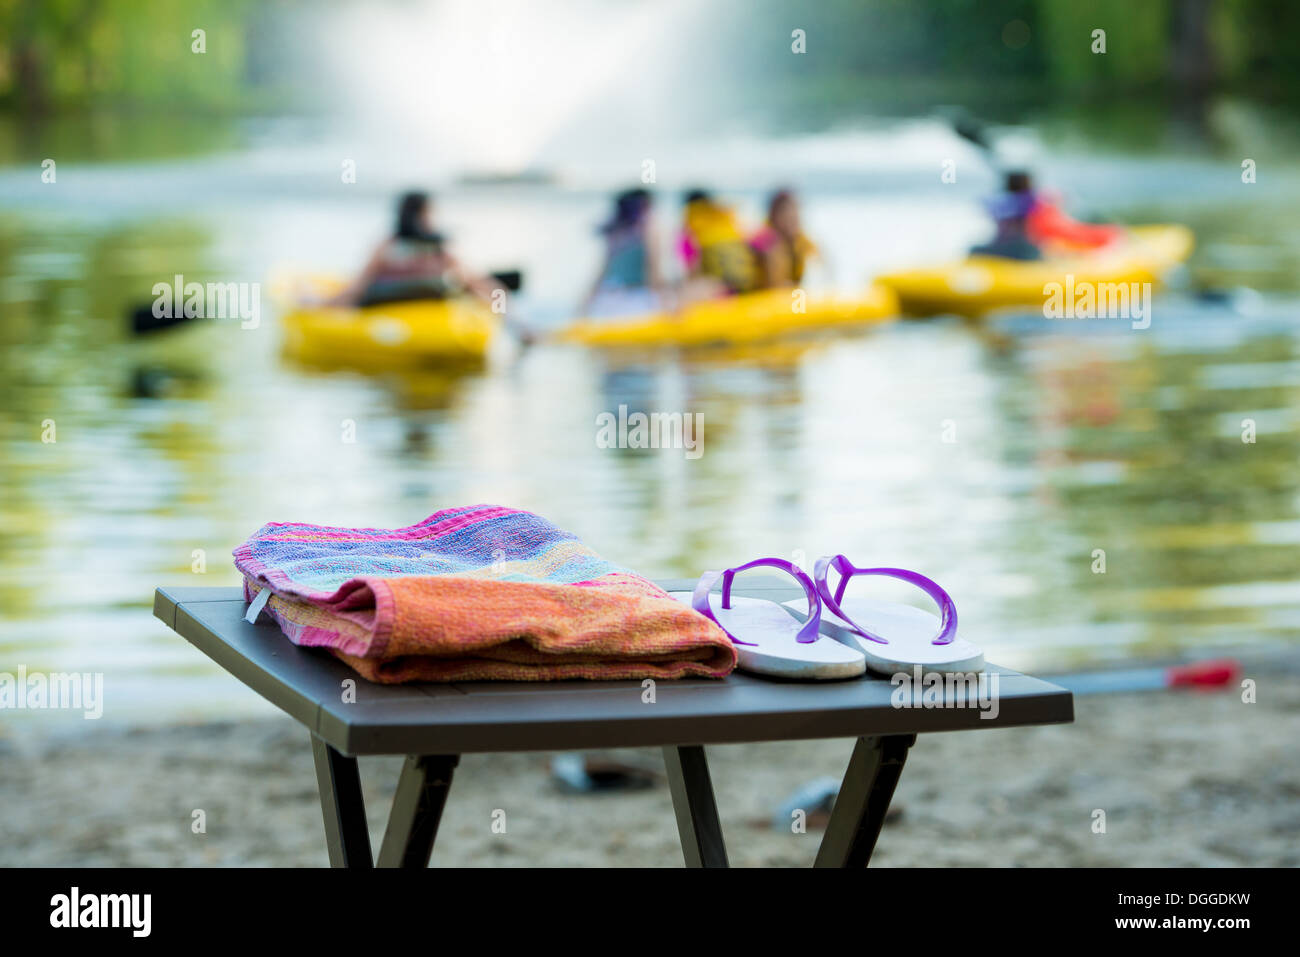 Flip flops and towel on table by lake - Stock Image